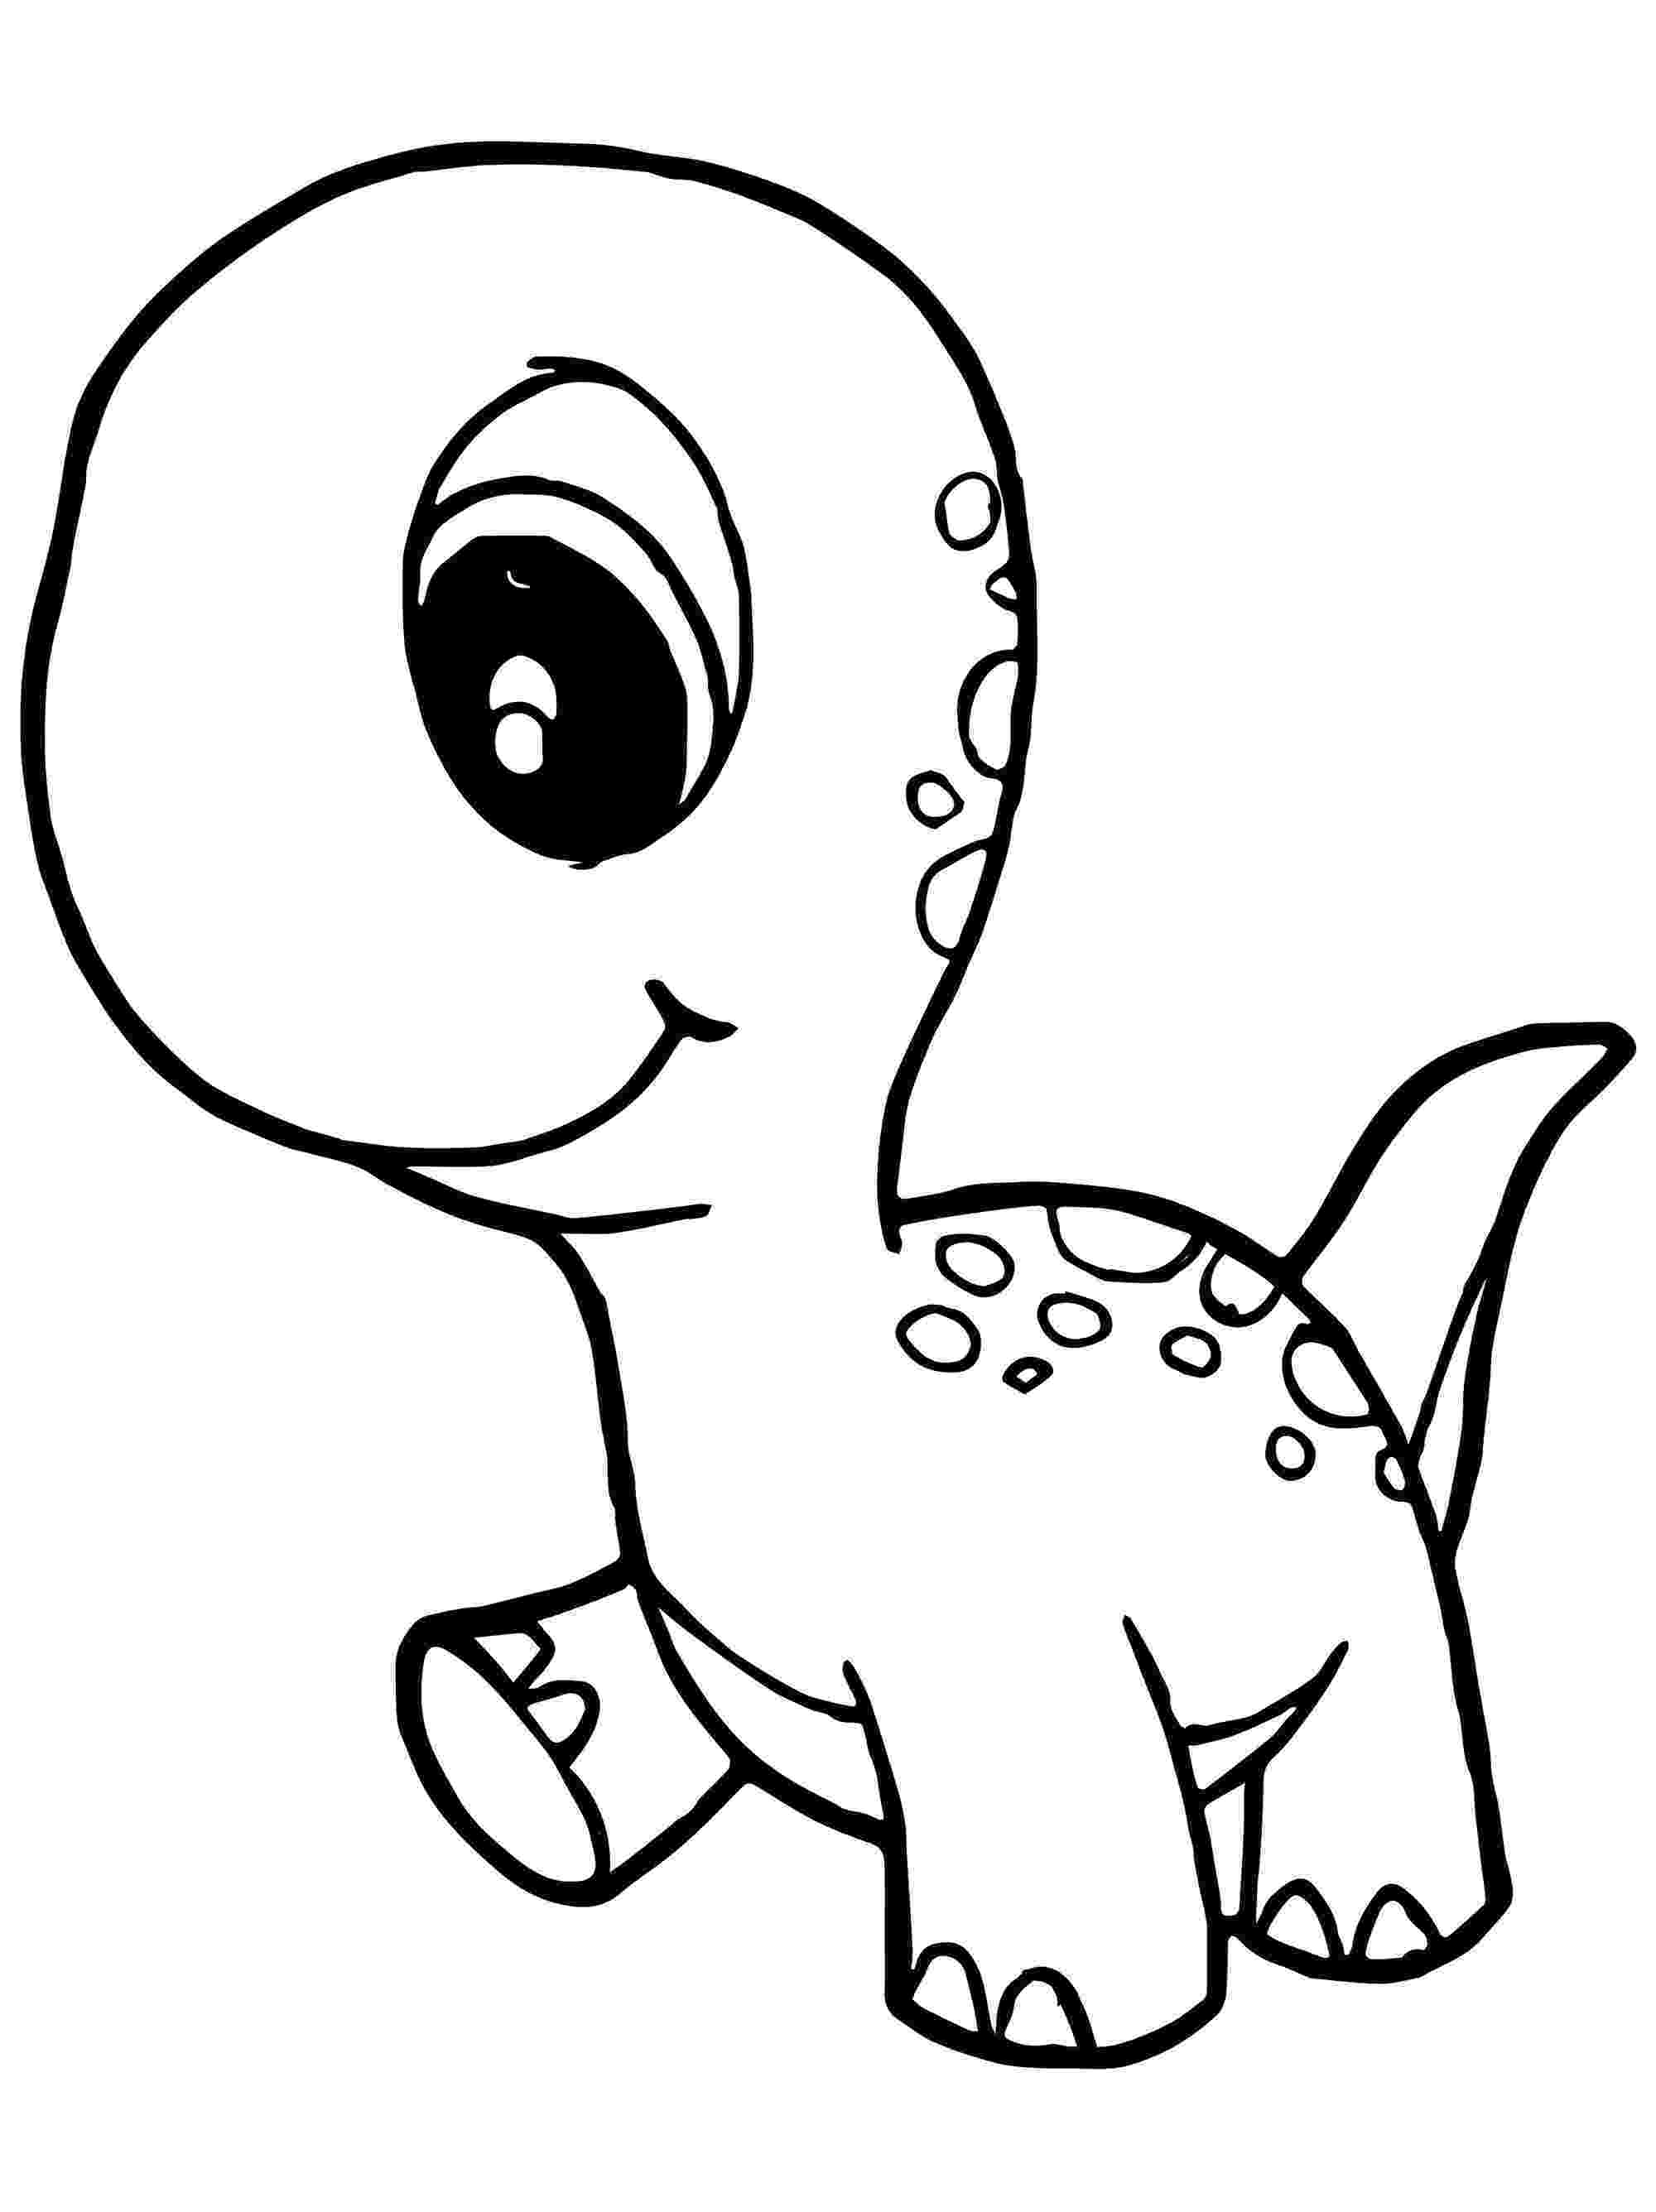 dinosuar coloring pages dinosaurs to download ba dinosaurs kids coloring pages dinosuar pages coloring